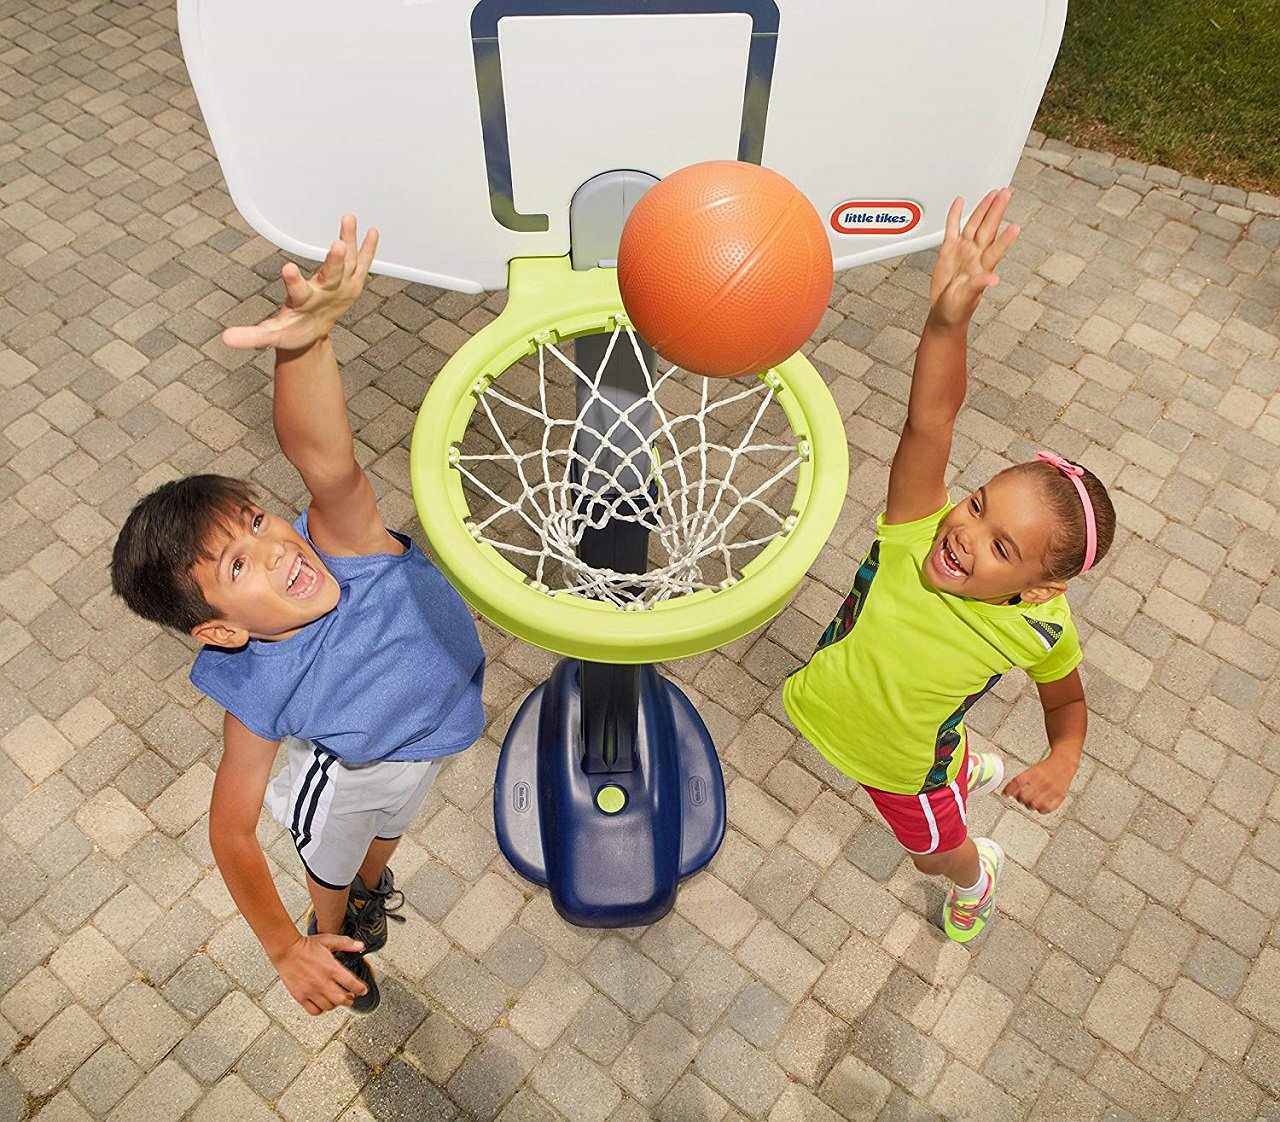 little tikes adjust basketball hoop image